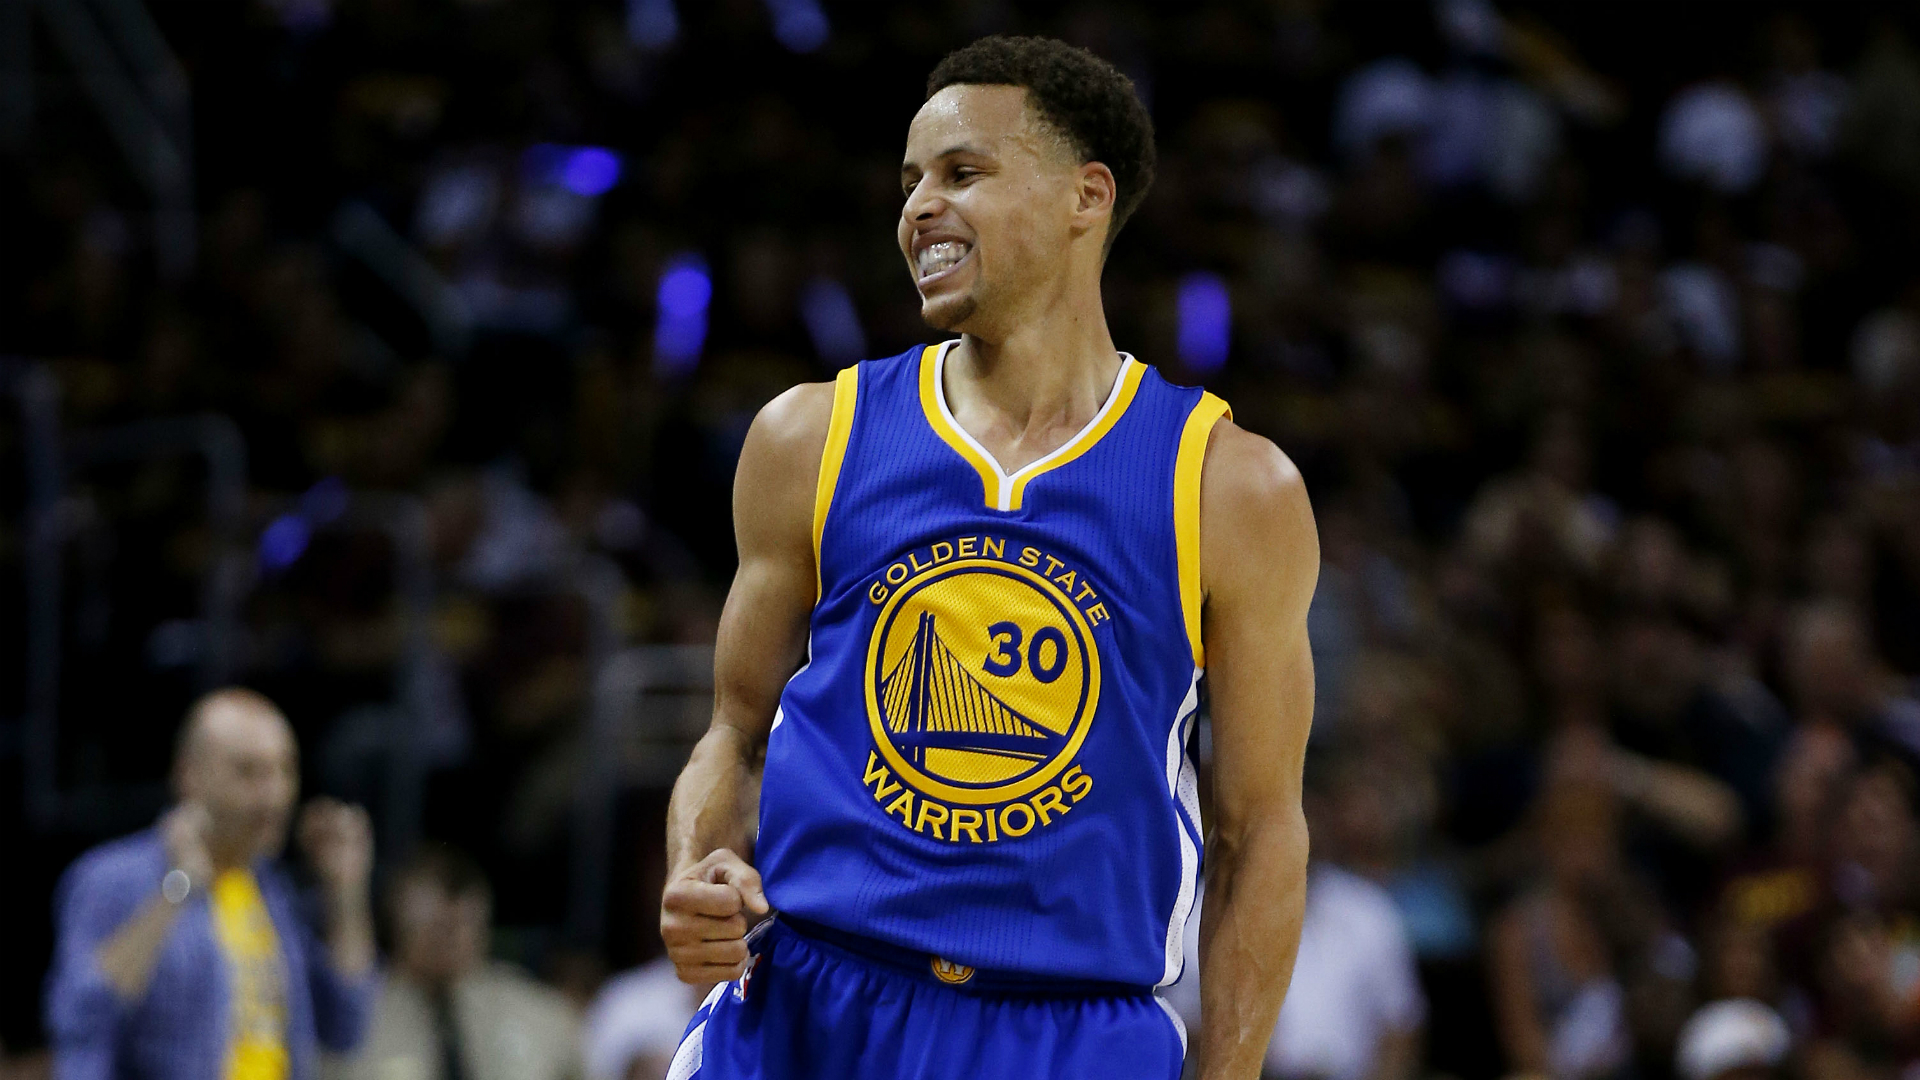 stephen curry hdstephen curry instagram, stephen curry stats, stephen curry рост, stephen curry wallpaper, stephen curry кроссовки, stephen curry art, stephen curry 2017, stephen curry height, stephen curry wife, stephen curry обои, stephen curry 3 point, stephen curry shooting form, stephen curry 2016, stephen curry nba, stephen curry hd, stephen curry mix, stephen curry mvp, stephen curry фото, stephen curry 3, stephen curry song